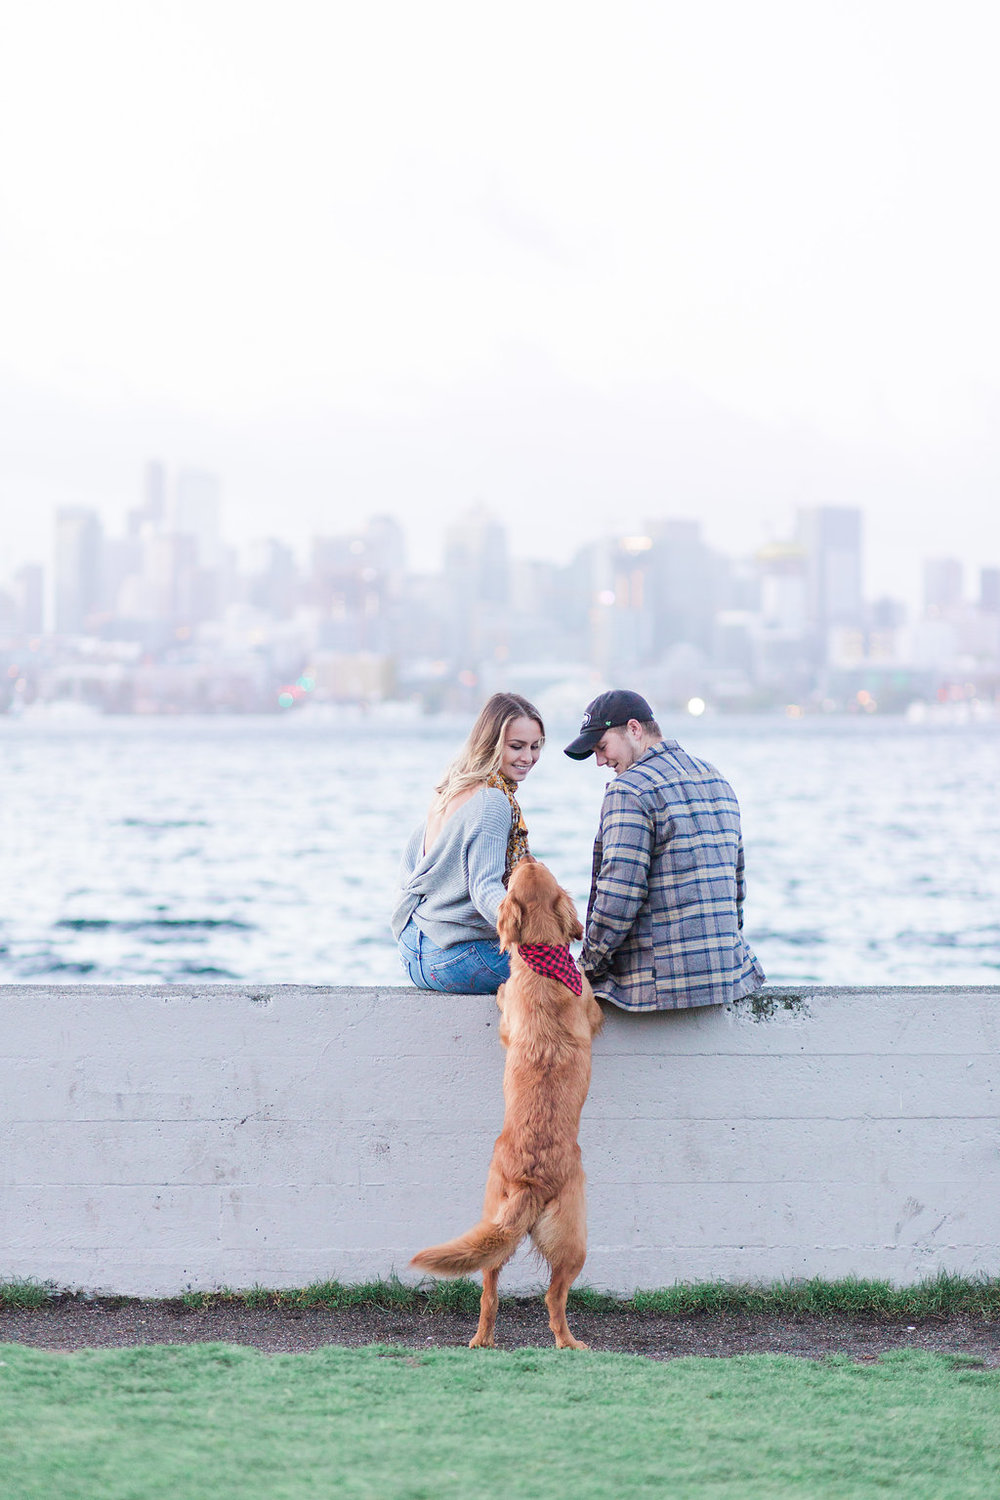 Lake Union Engagement Photos - Seattle Engagement Photo Locations - Eva Rieb Photography -- Wedding Blog - The Overwhelmed Bride